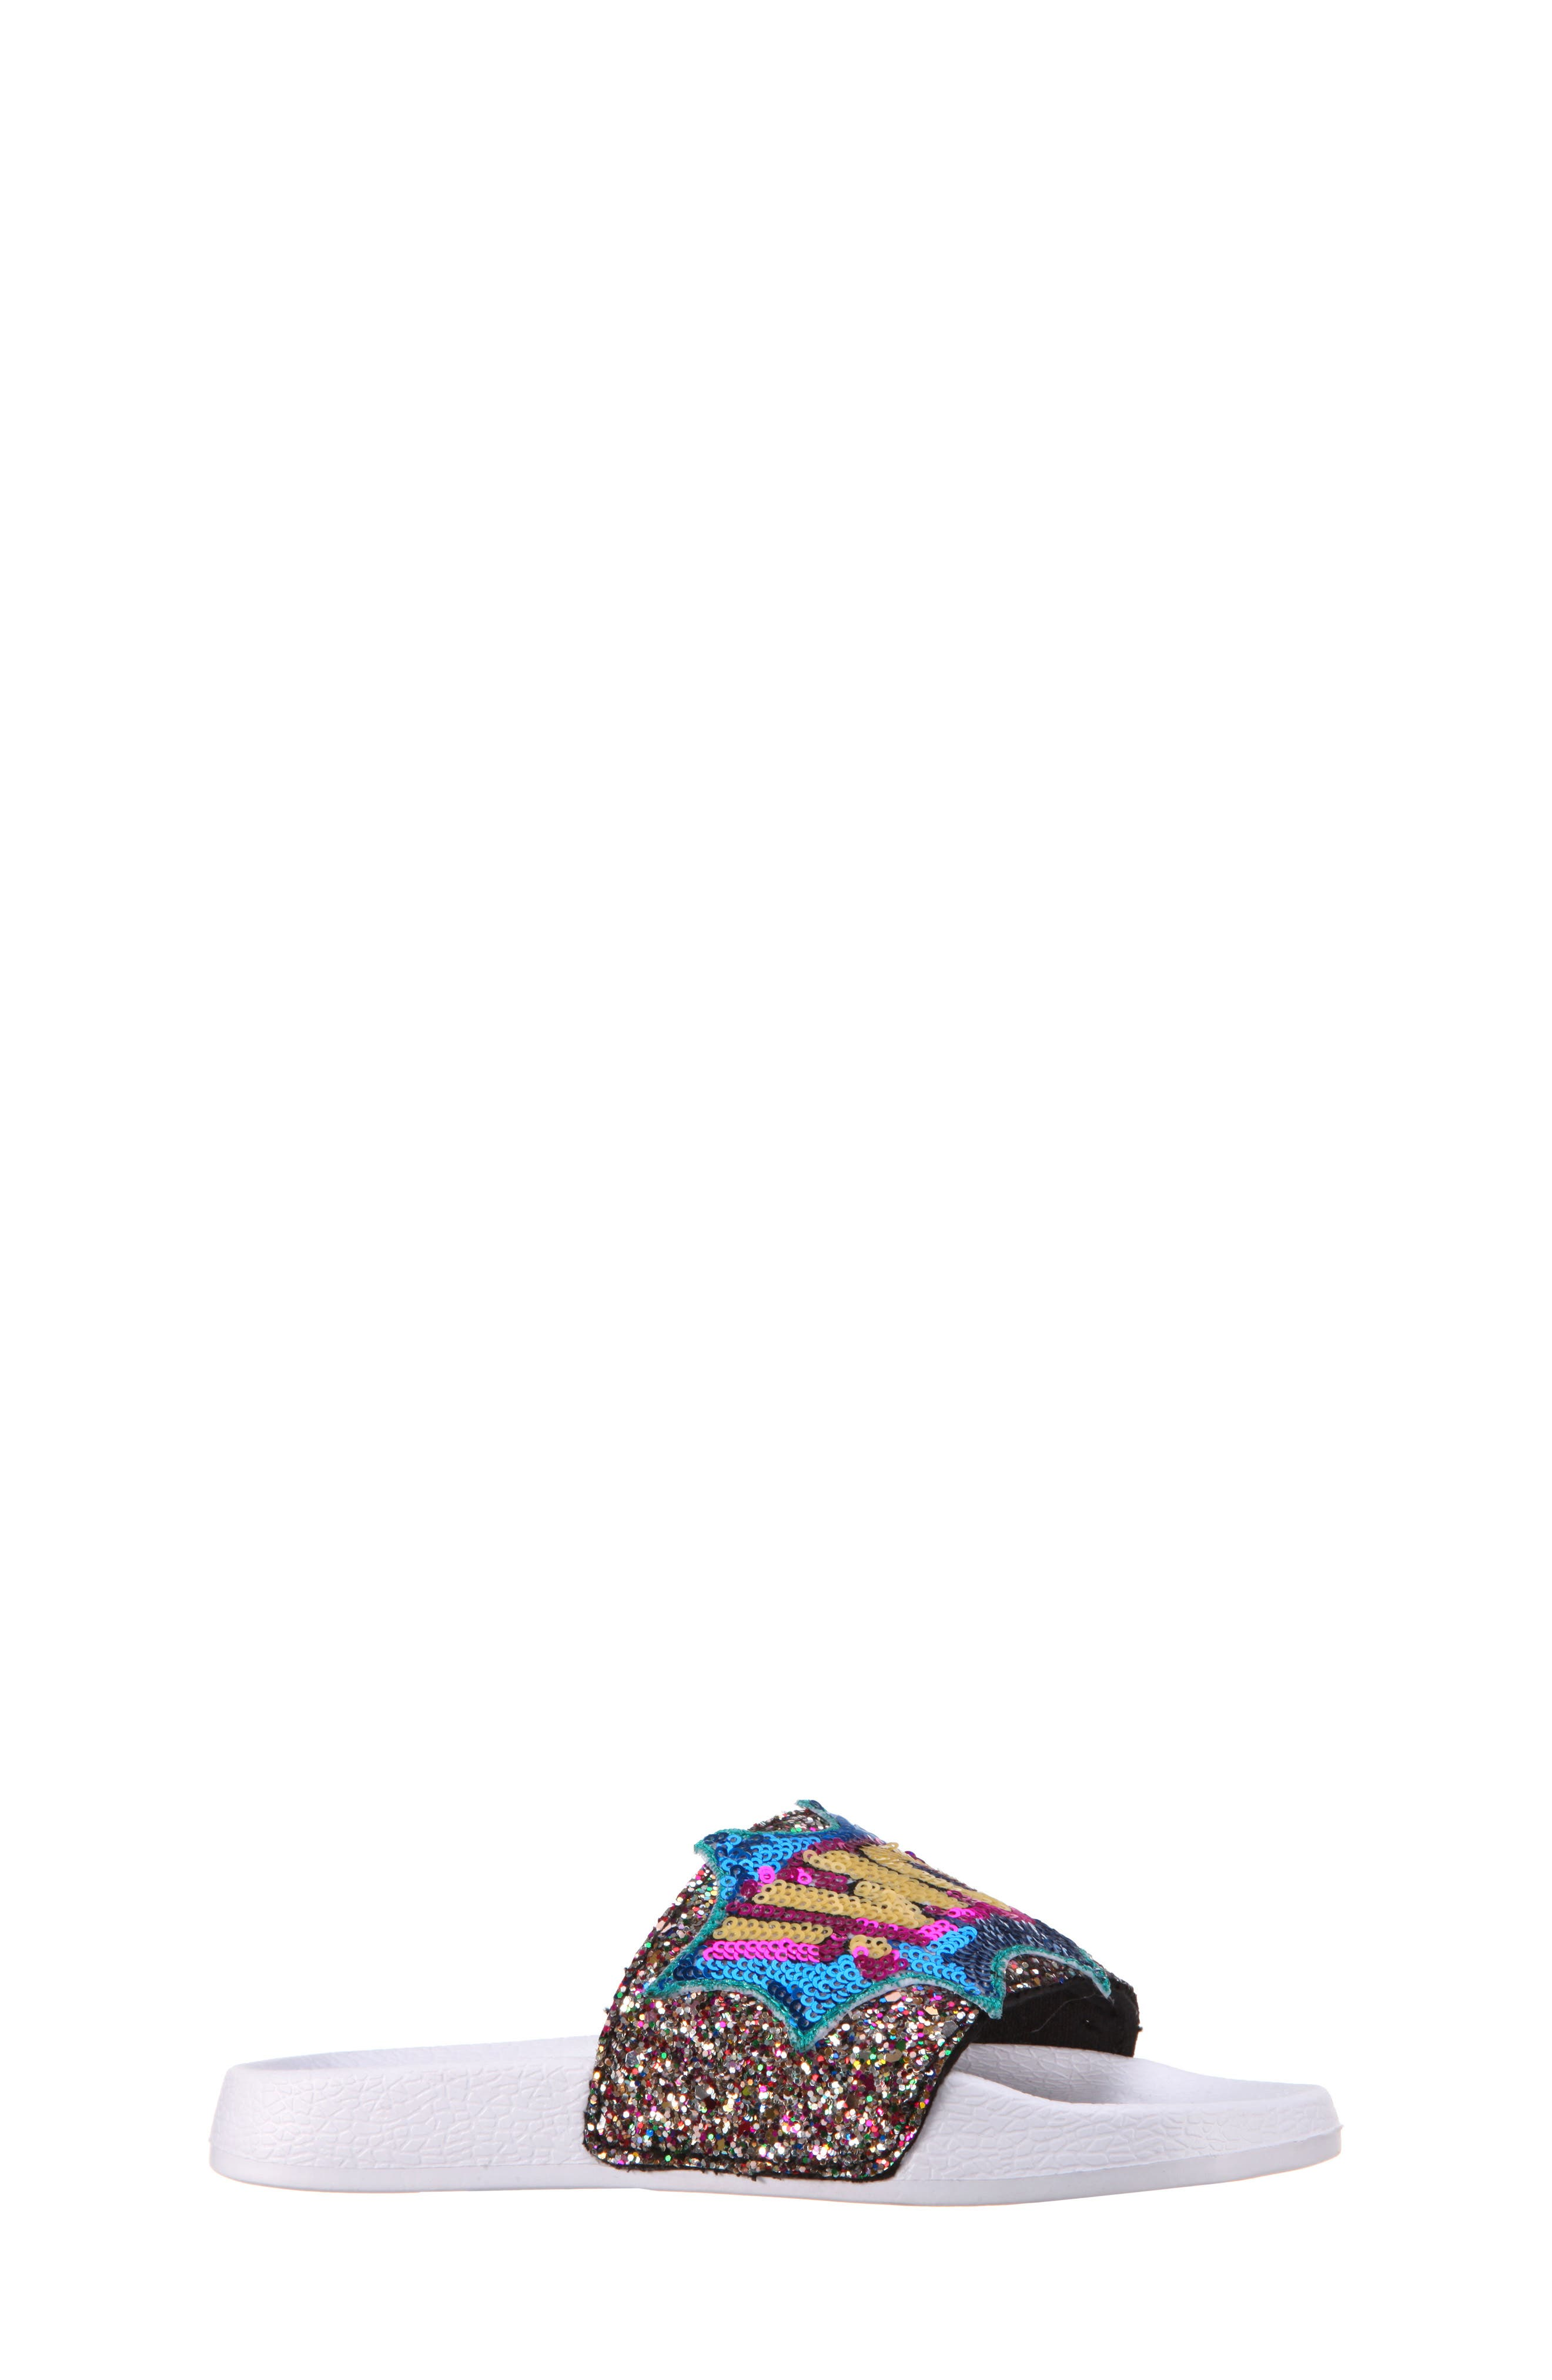 Sabreena2 Sequined Sport Slide,                             Main thumbnail 1, color,                             400